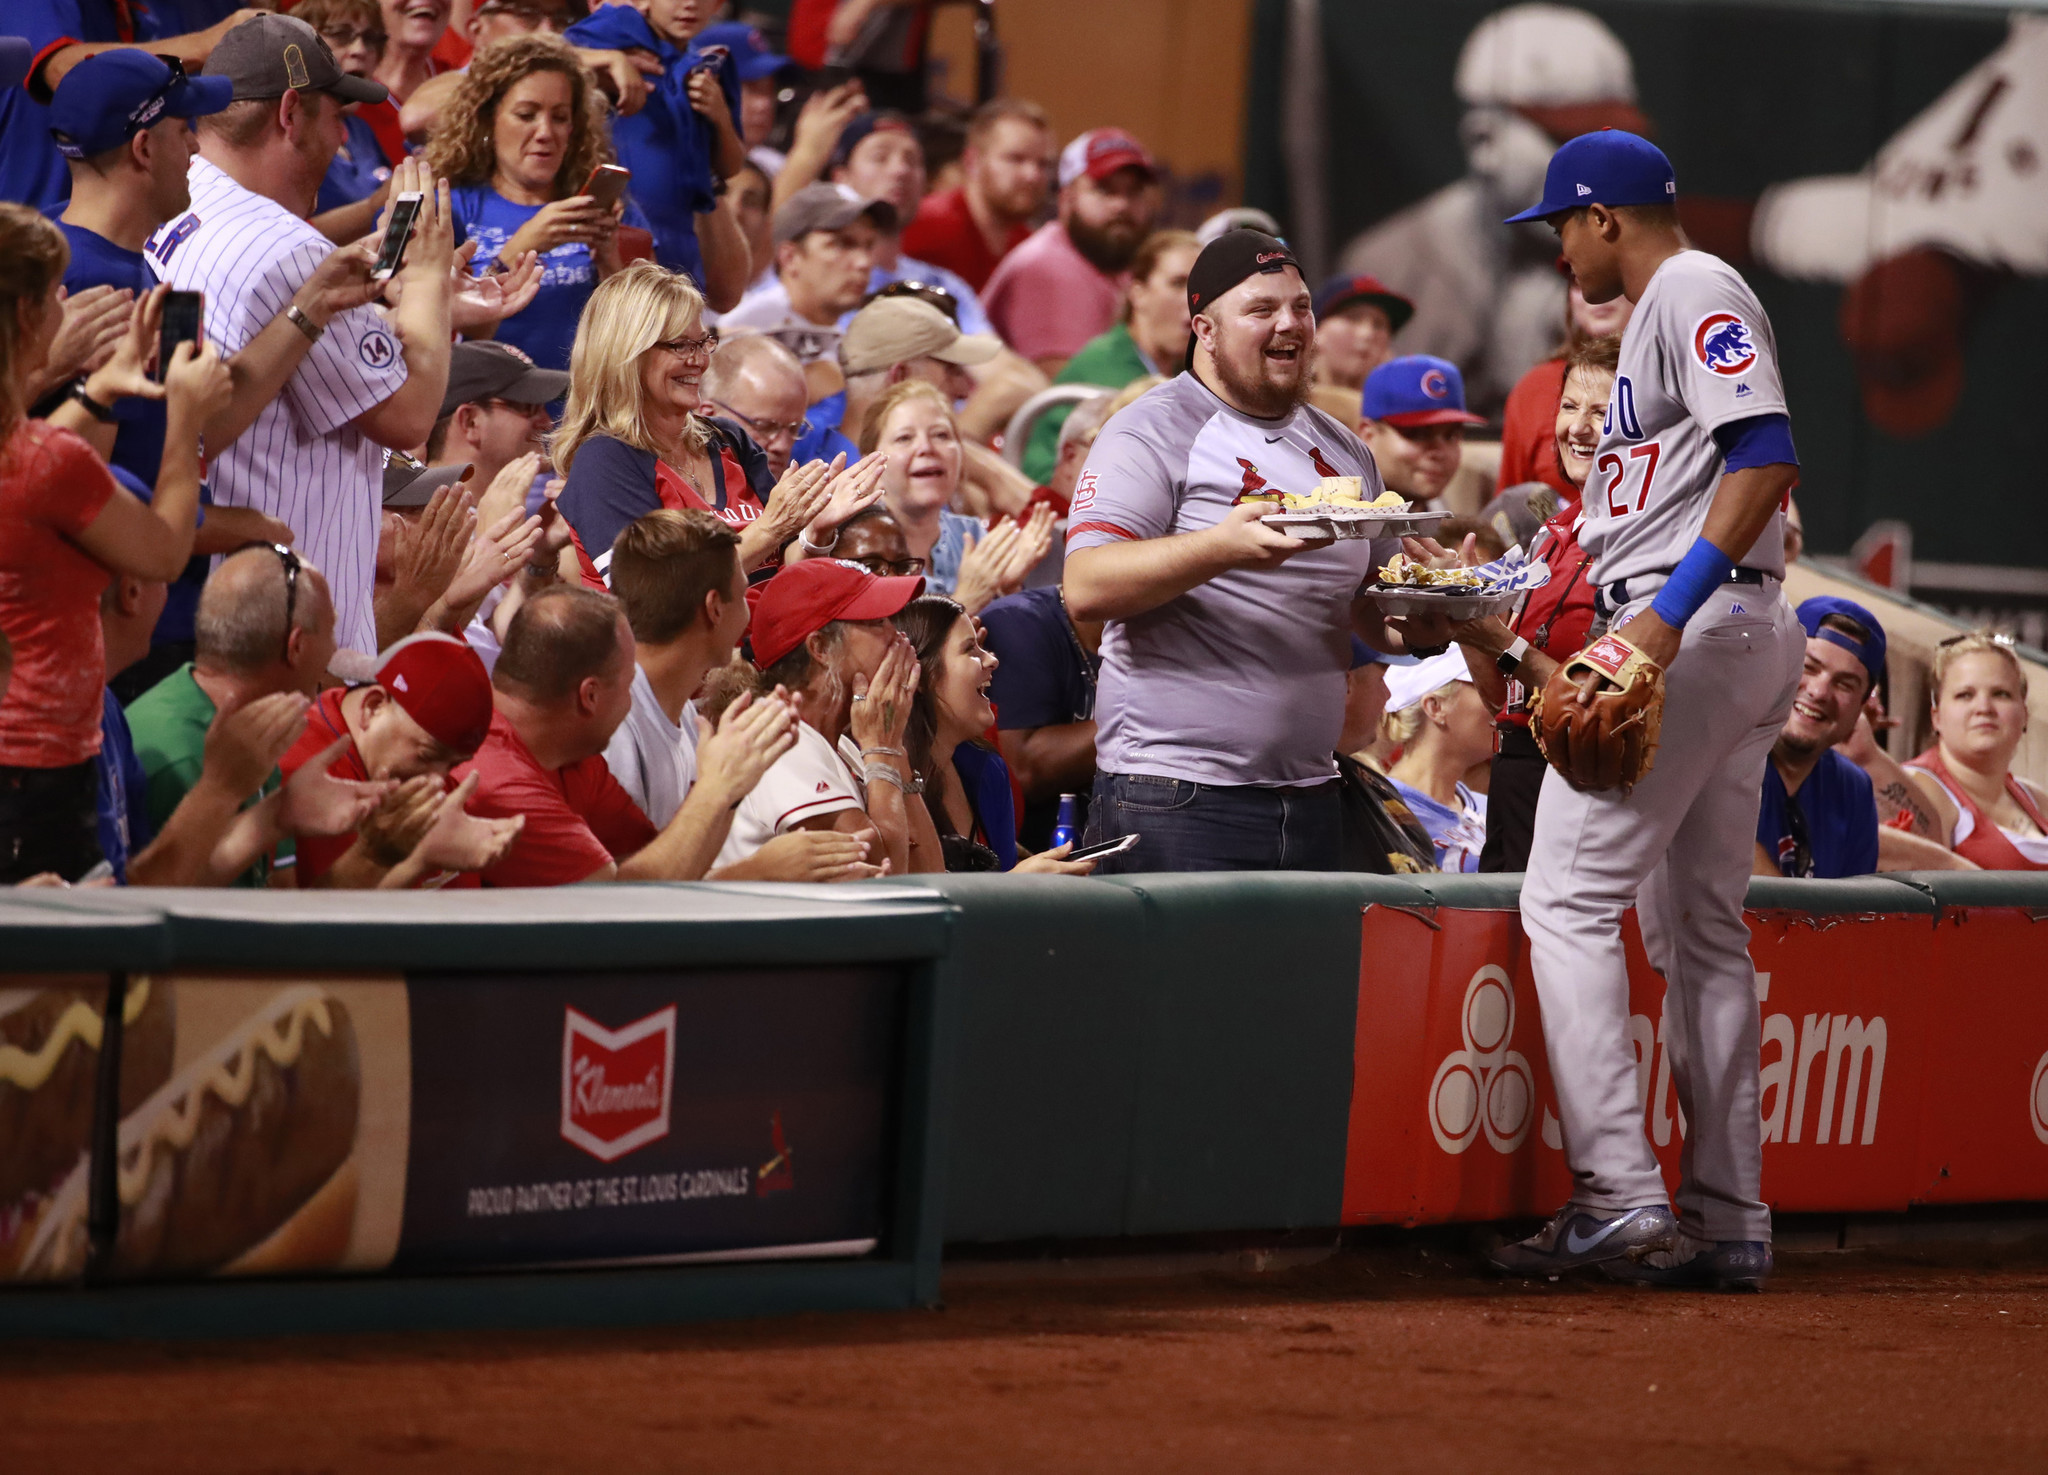 Ct-addison-russell-delivers-nachos-to-thankful-cardinals-fan-20170925